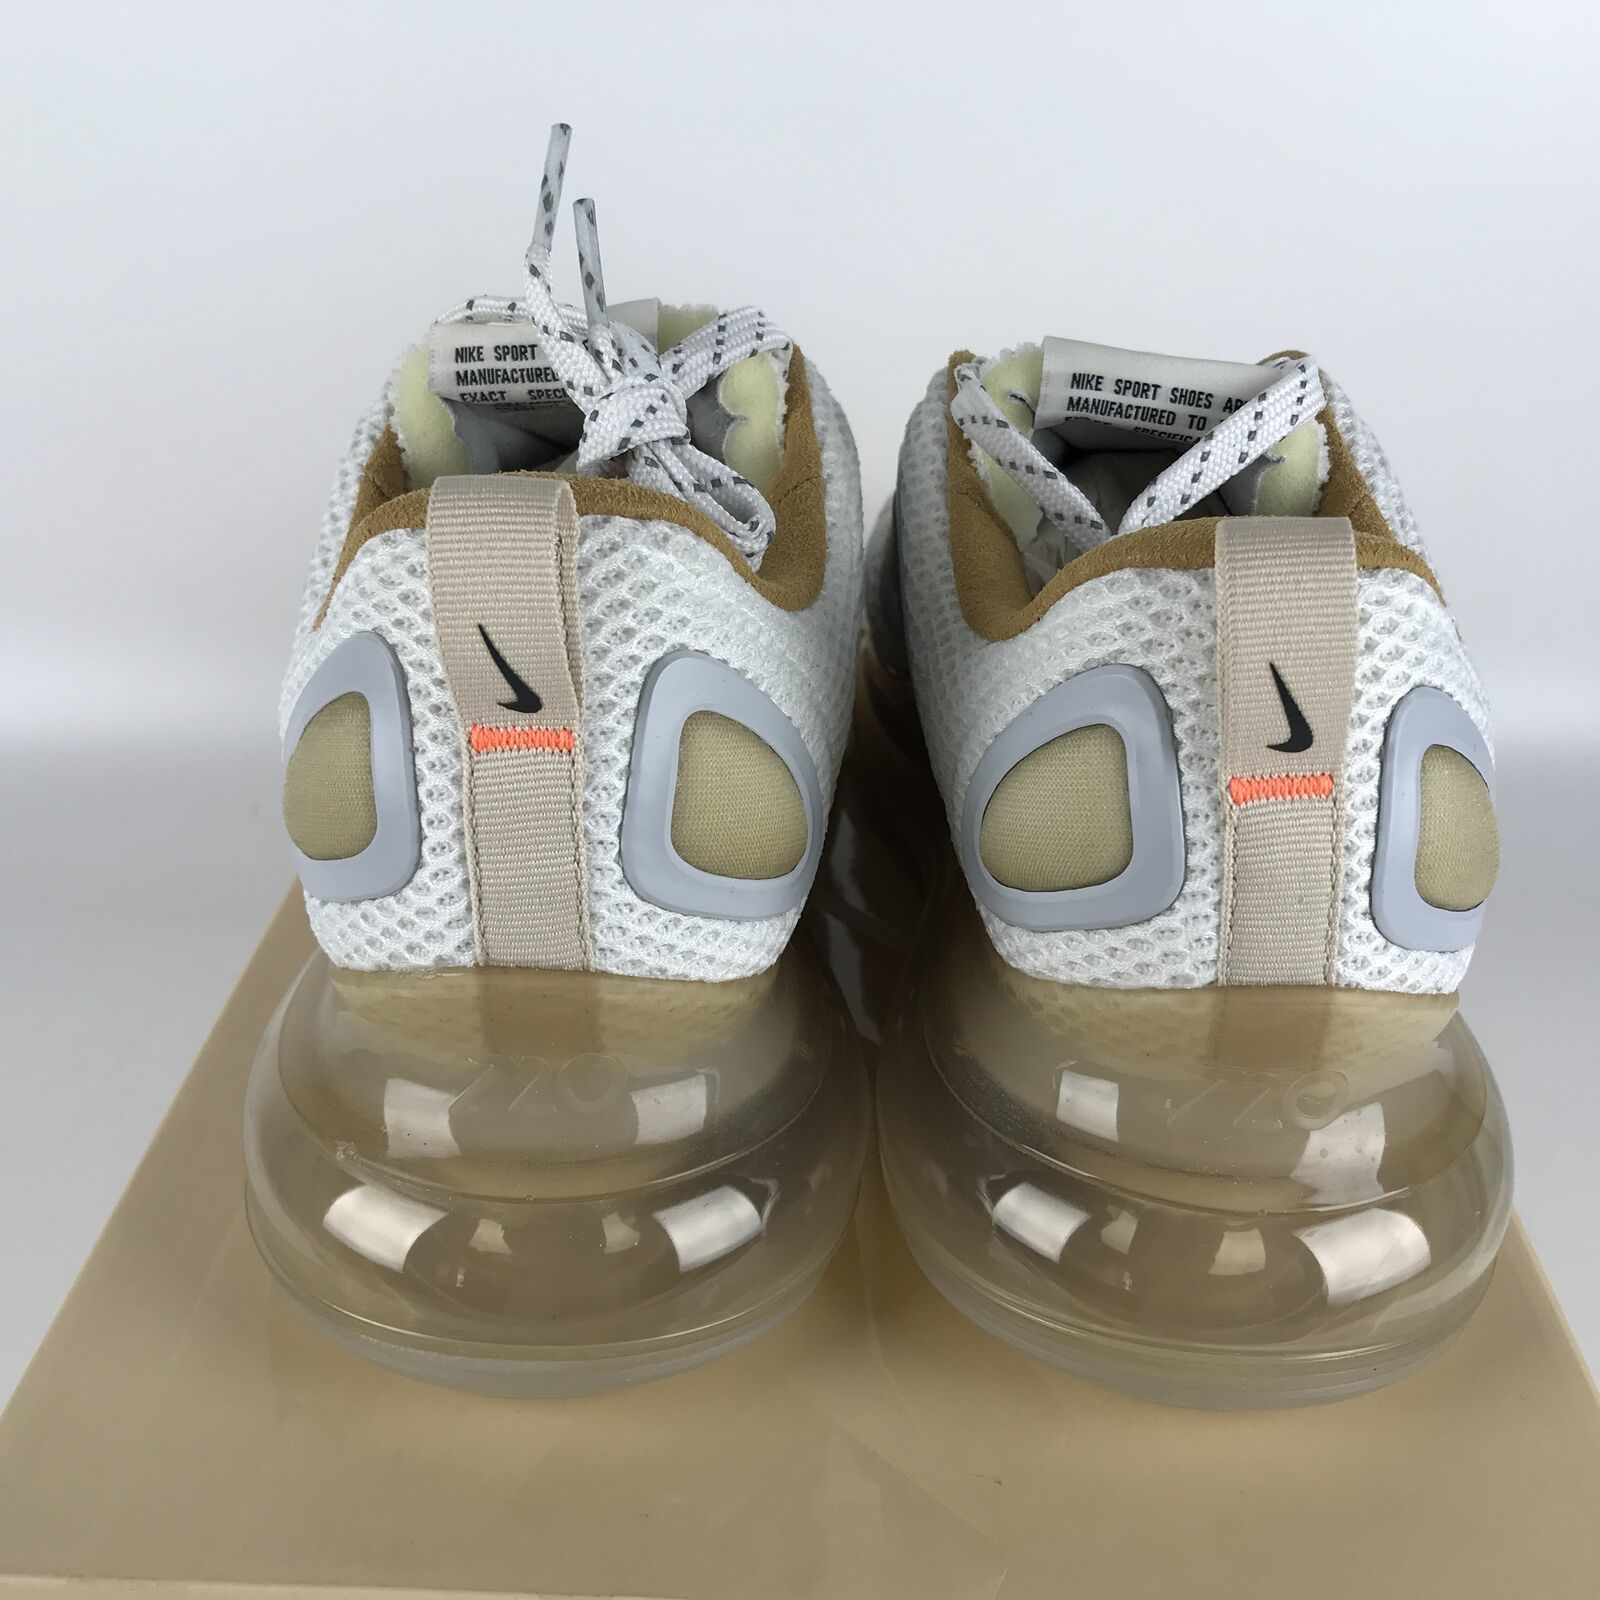 Nike Air Max 720 Running Shoes 10.5 White/Pale Vanilla CI6393 100 image 5